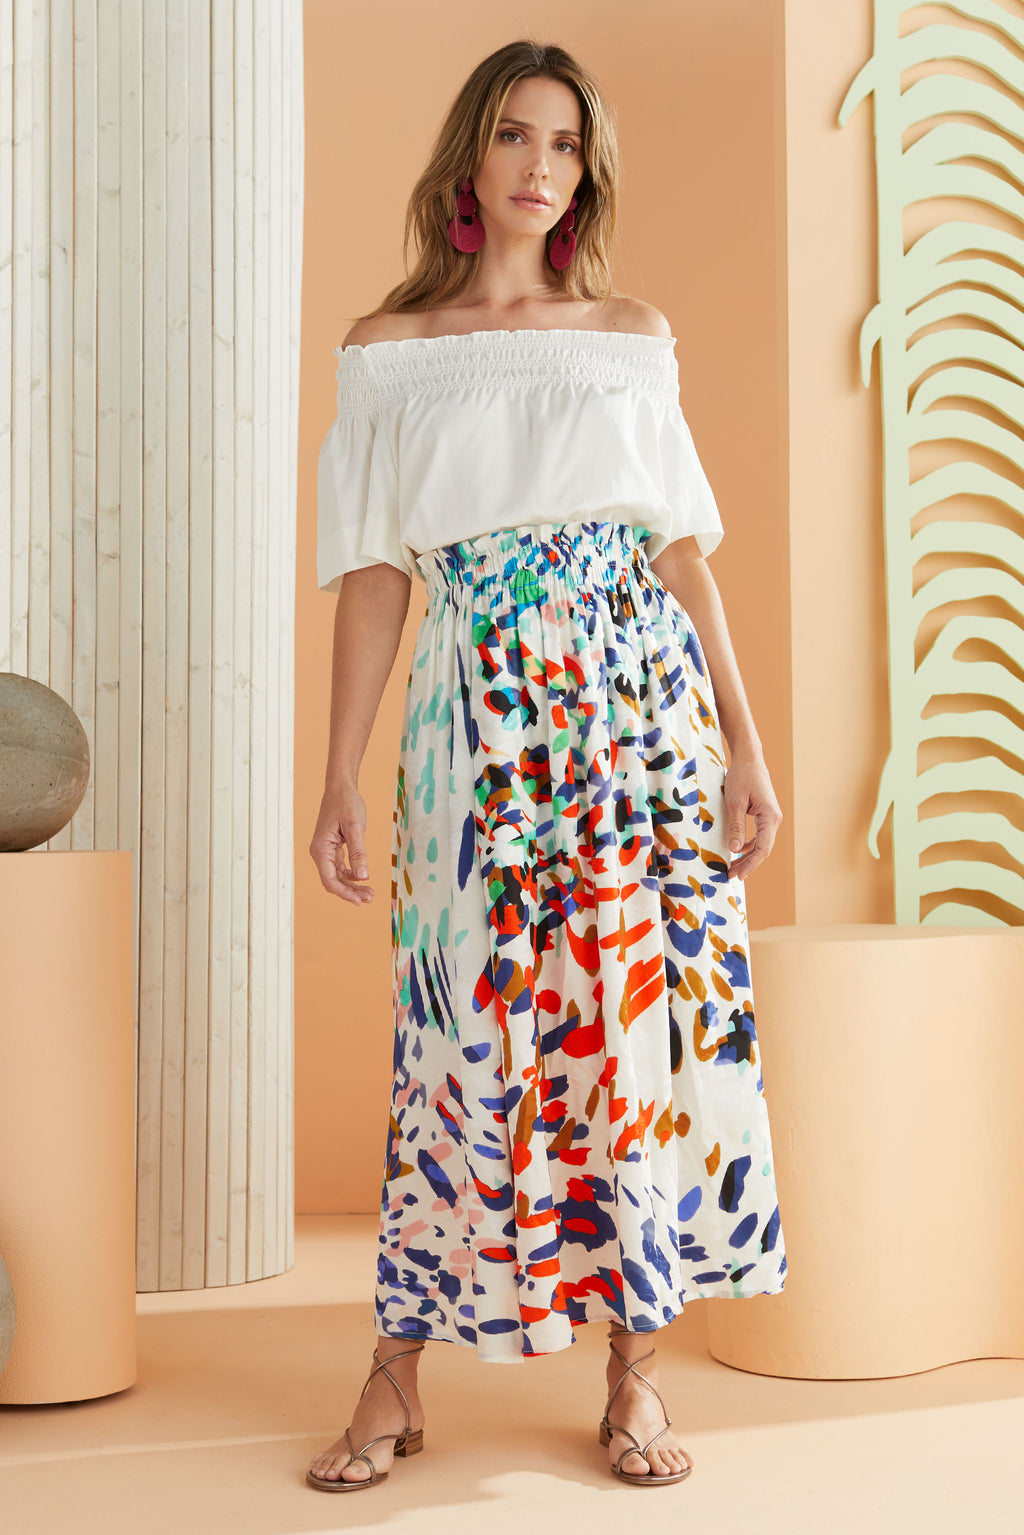 multi colored animal print skirt worn with white top